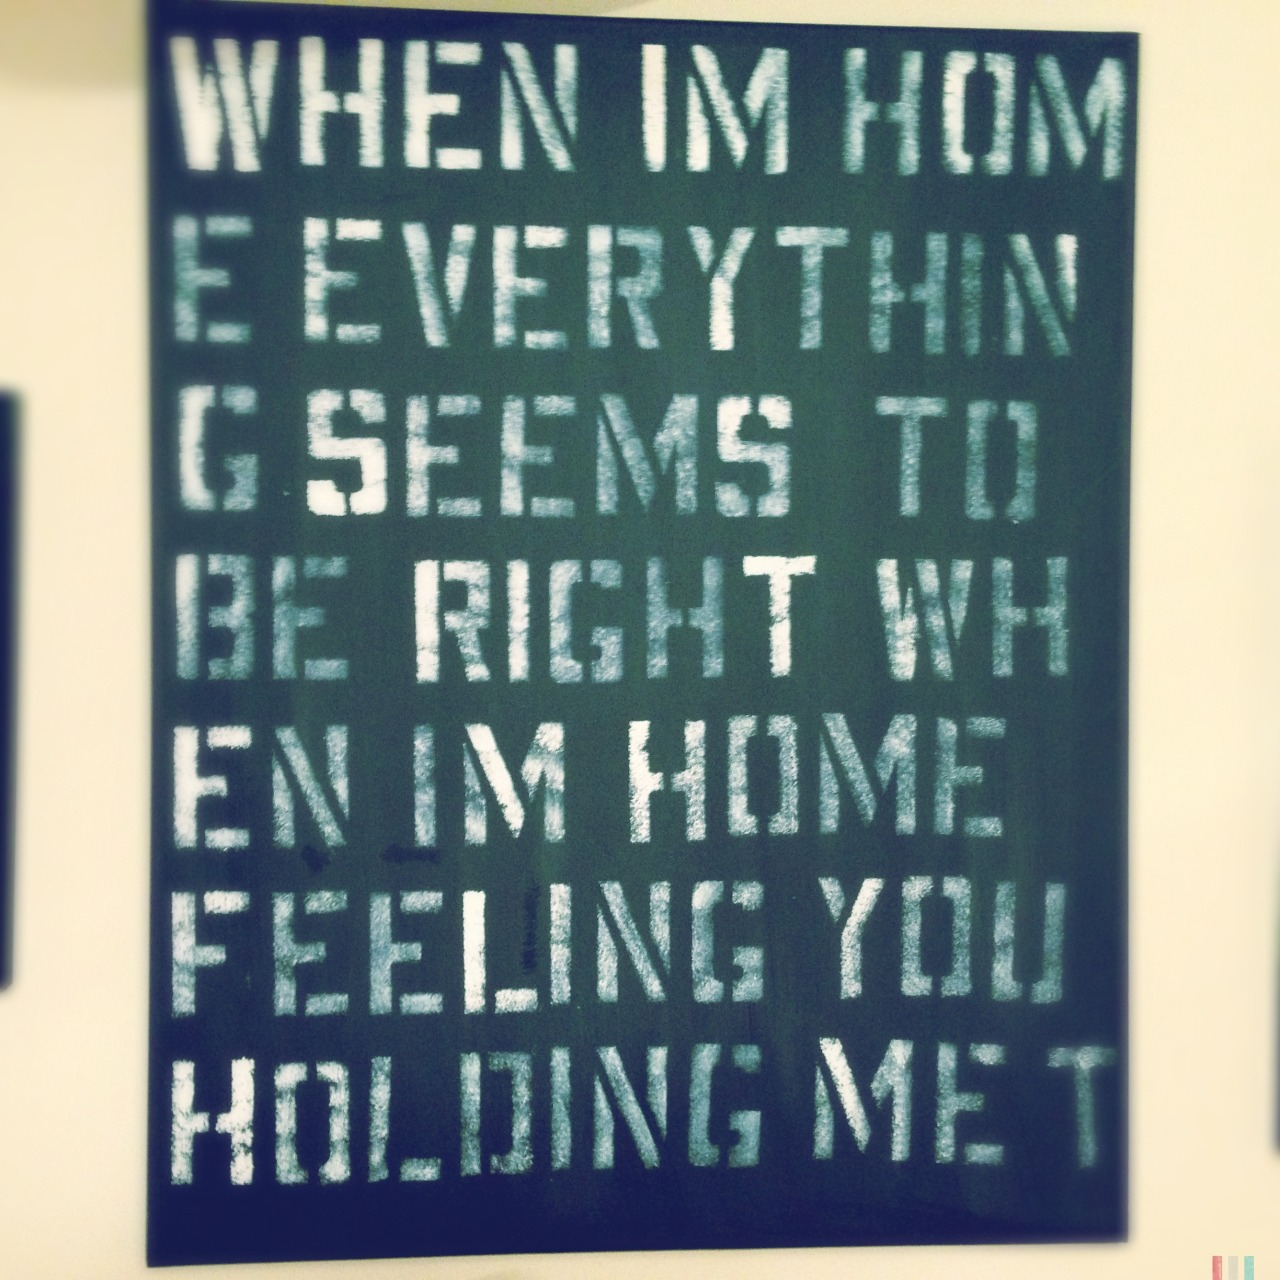 Bored and snapping things around my house #painting #lyrics #quote #home #love #truth